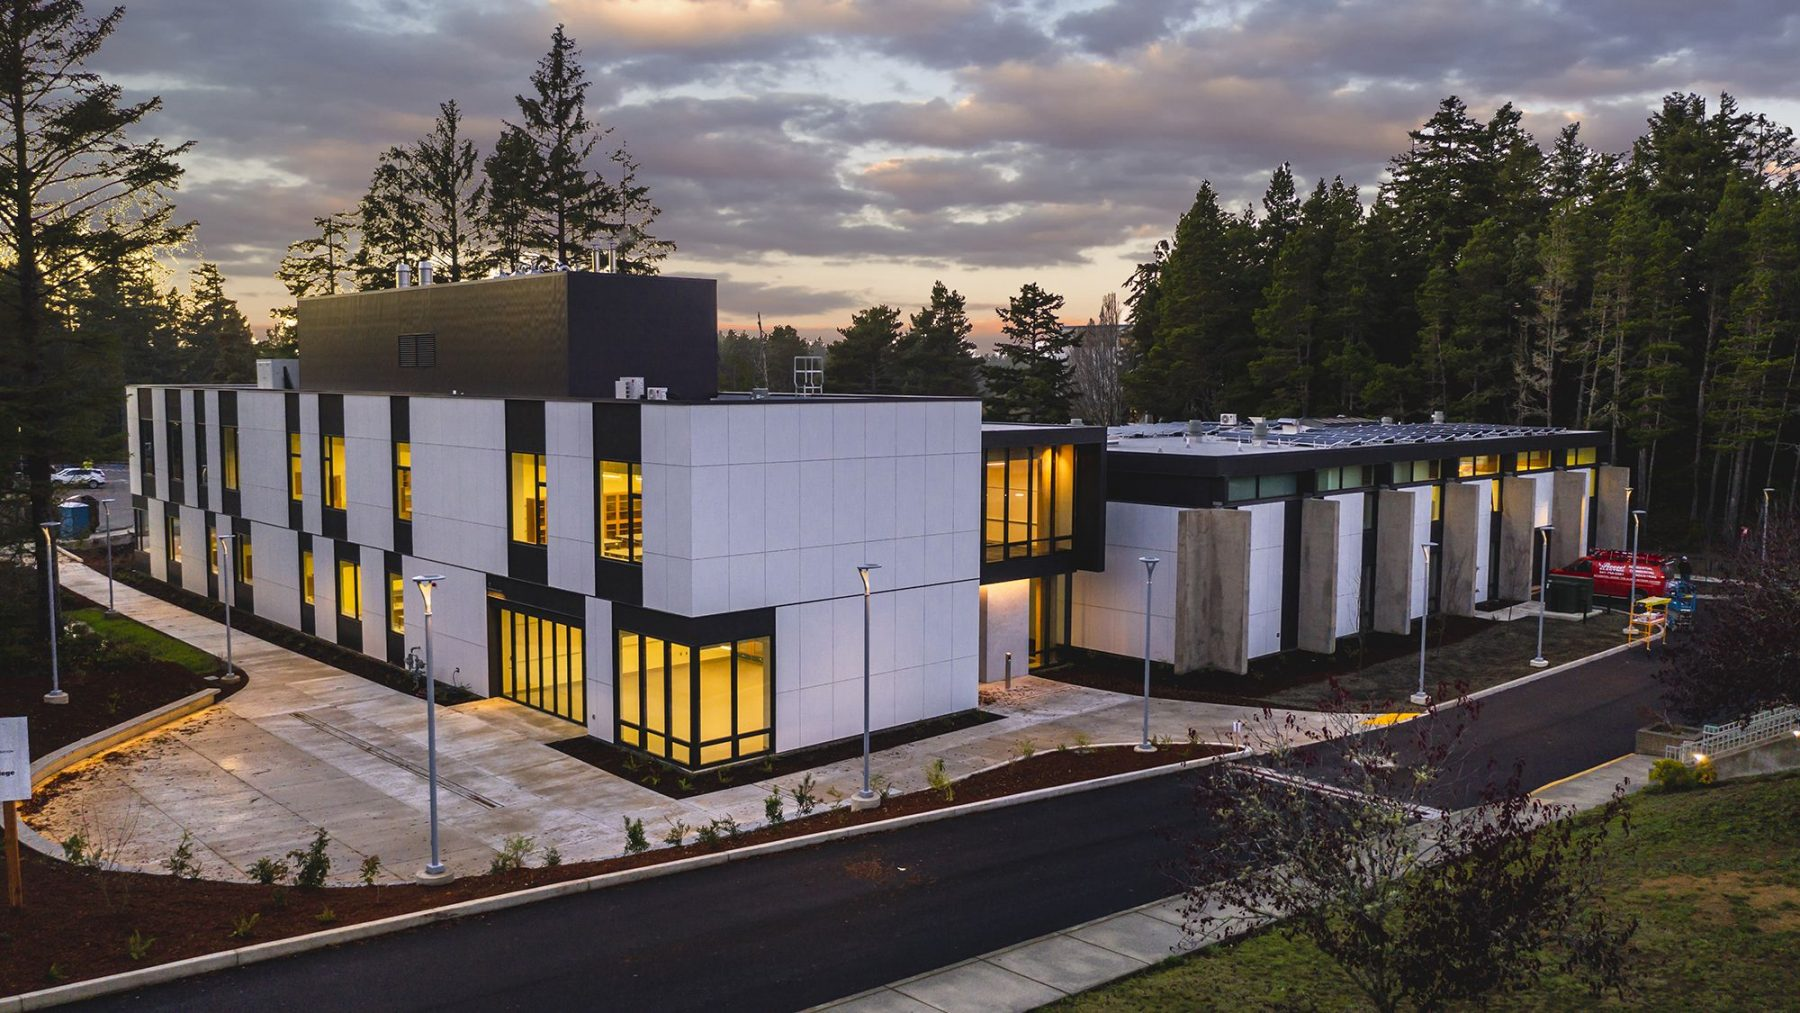 Photo of Umpqua Hall in the evening with sunset